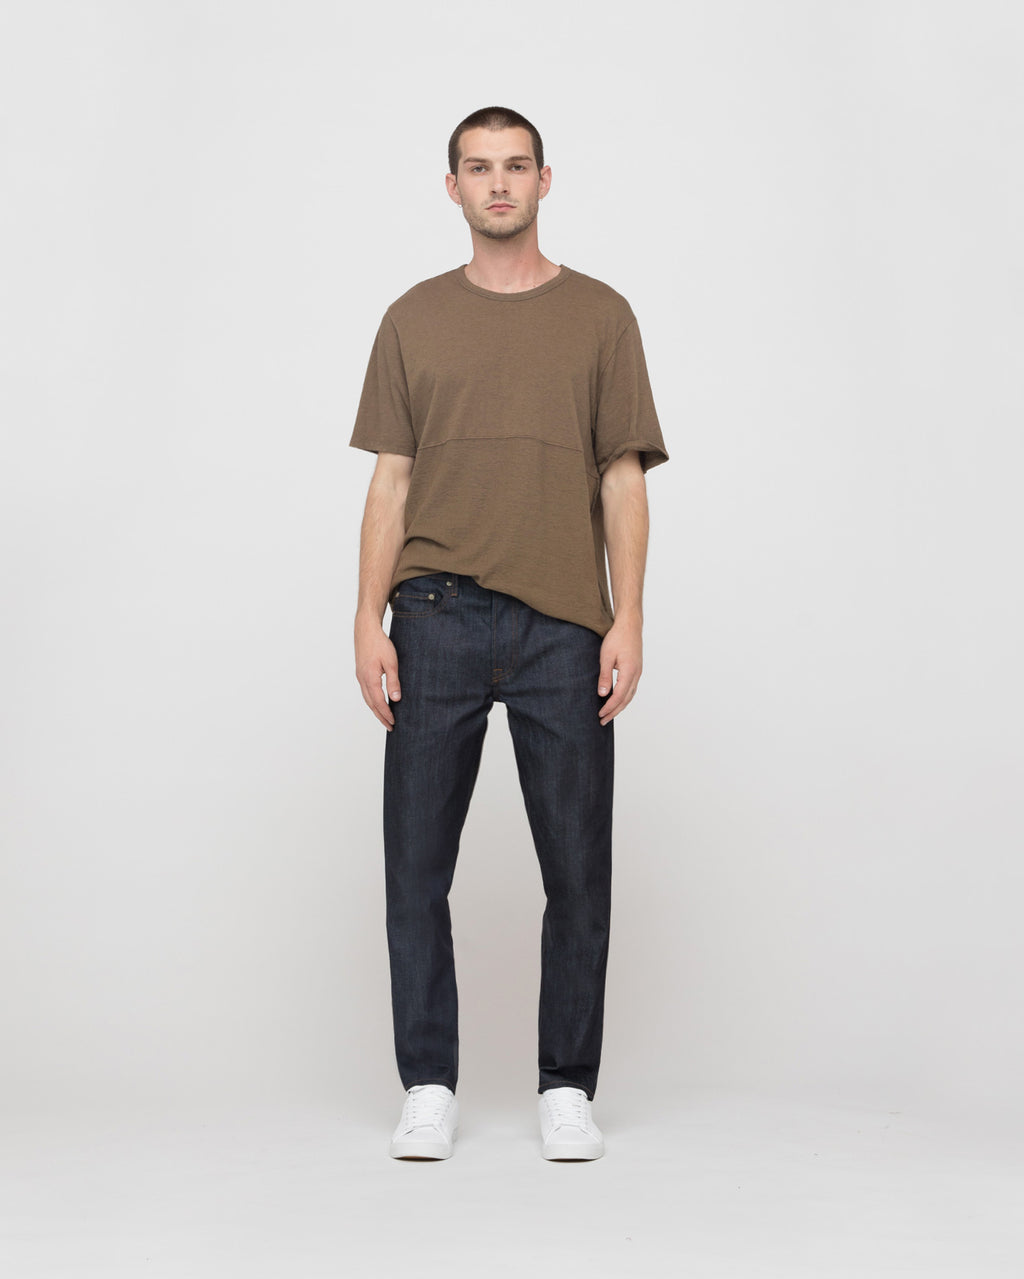 The Oria Tee in Olive Brown